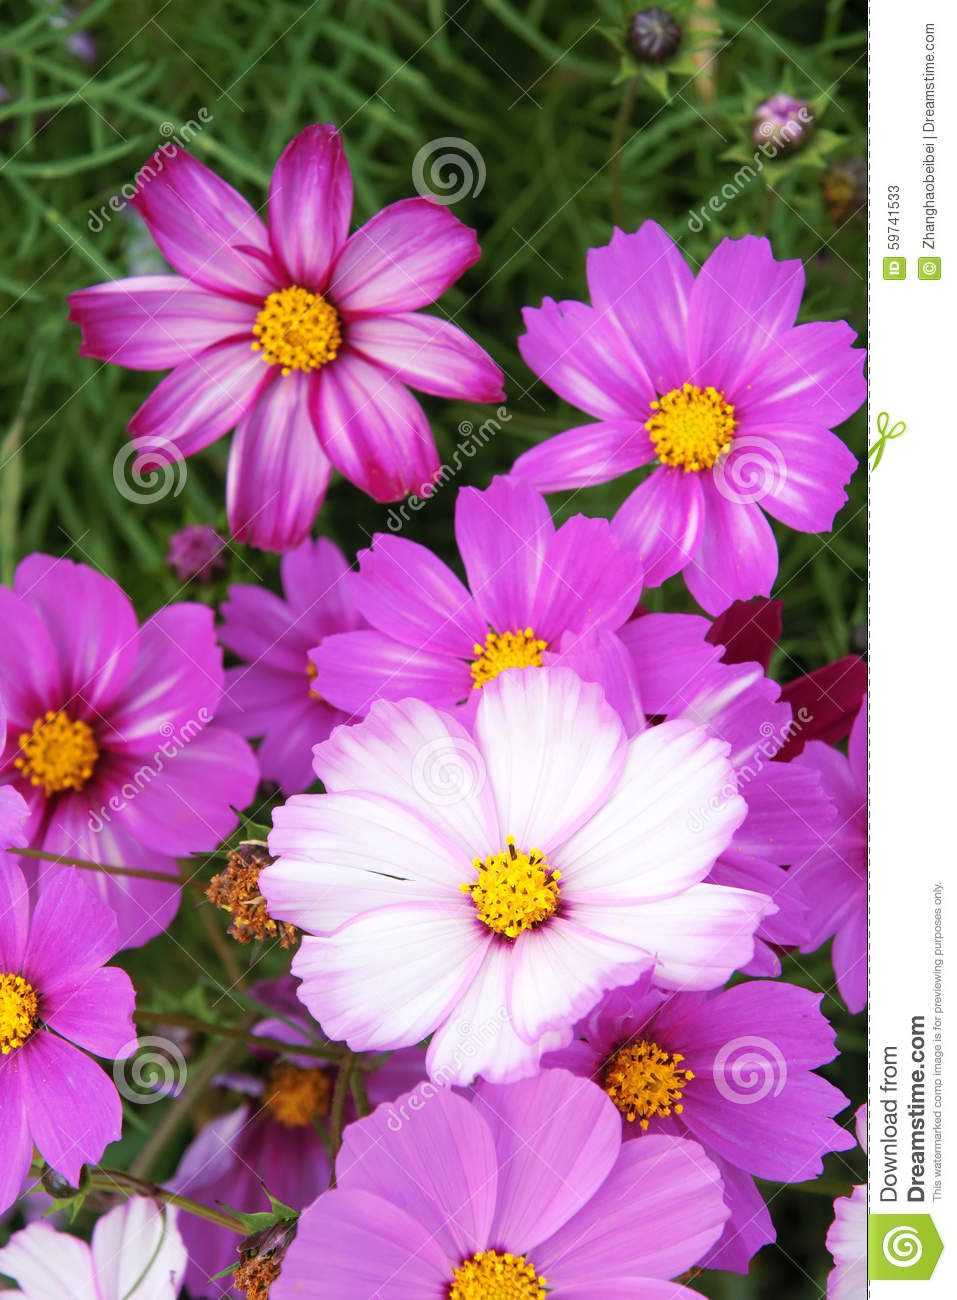 Pink And White Bedroom: Cosmos Flowers Stock Image. Image Of Bipinnata